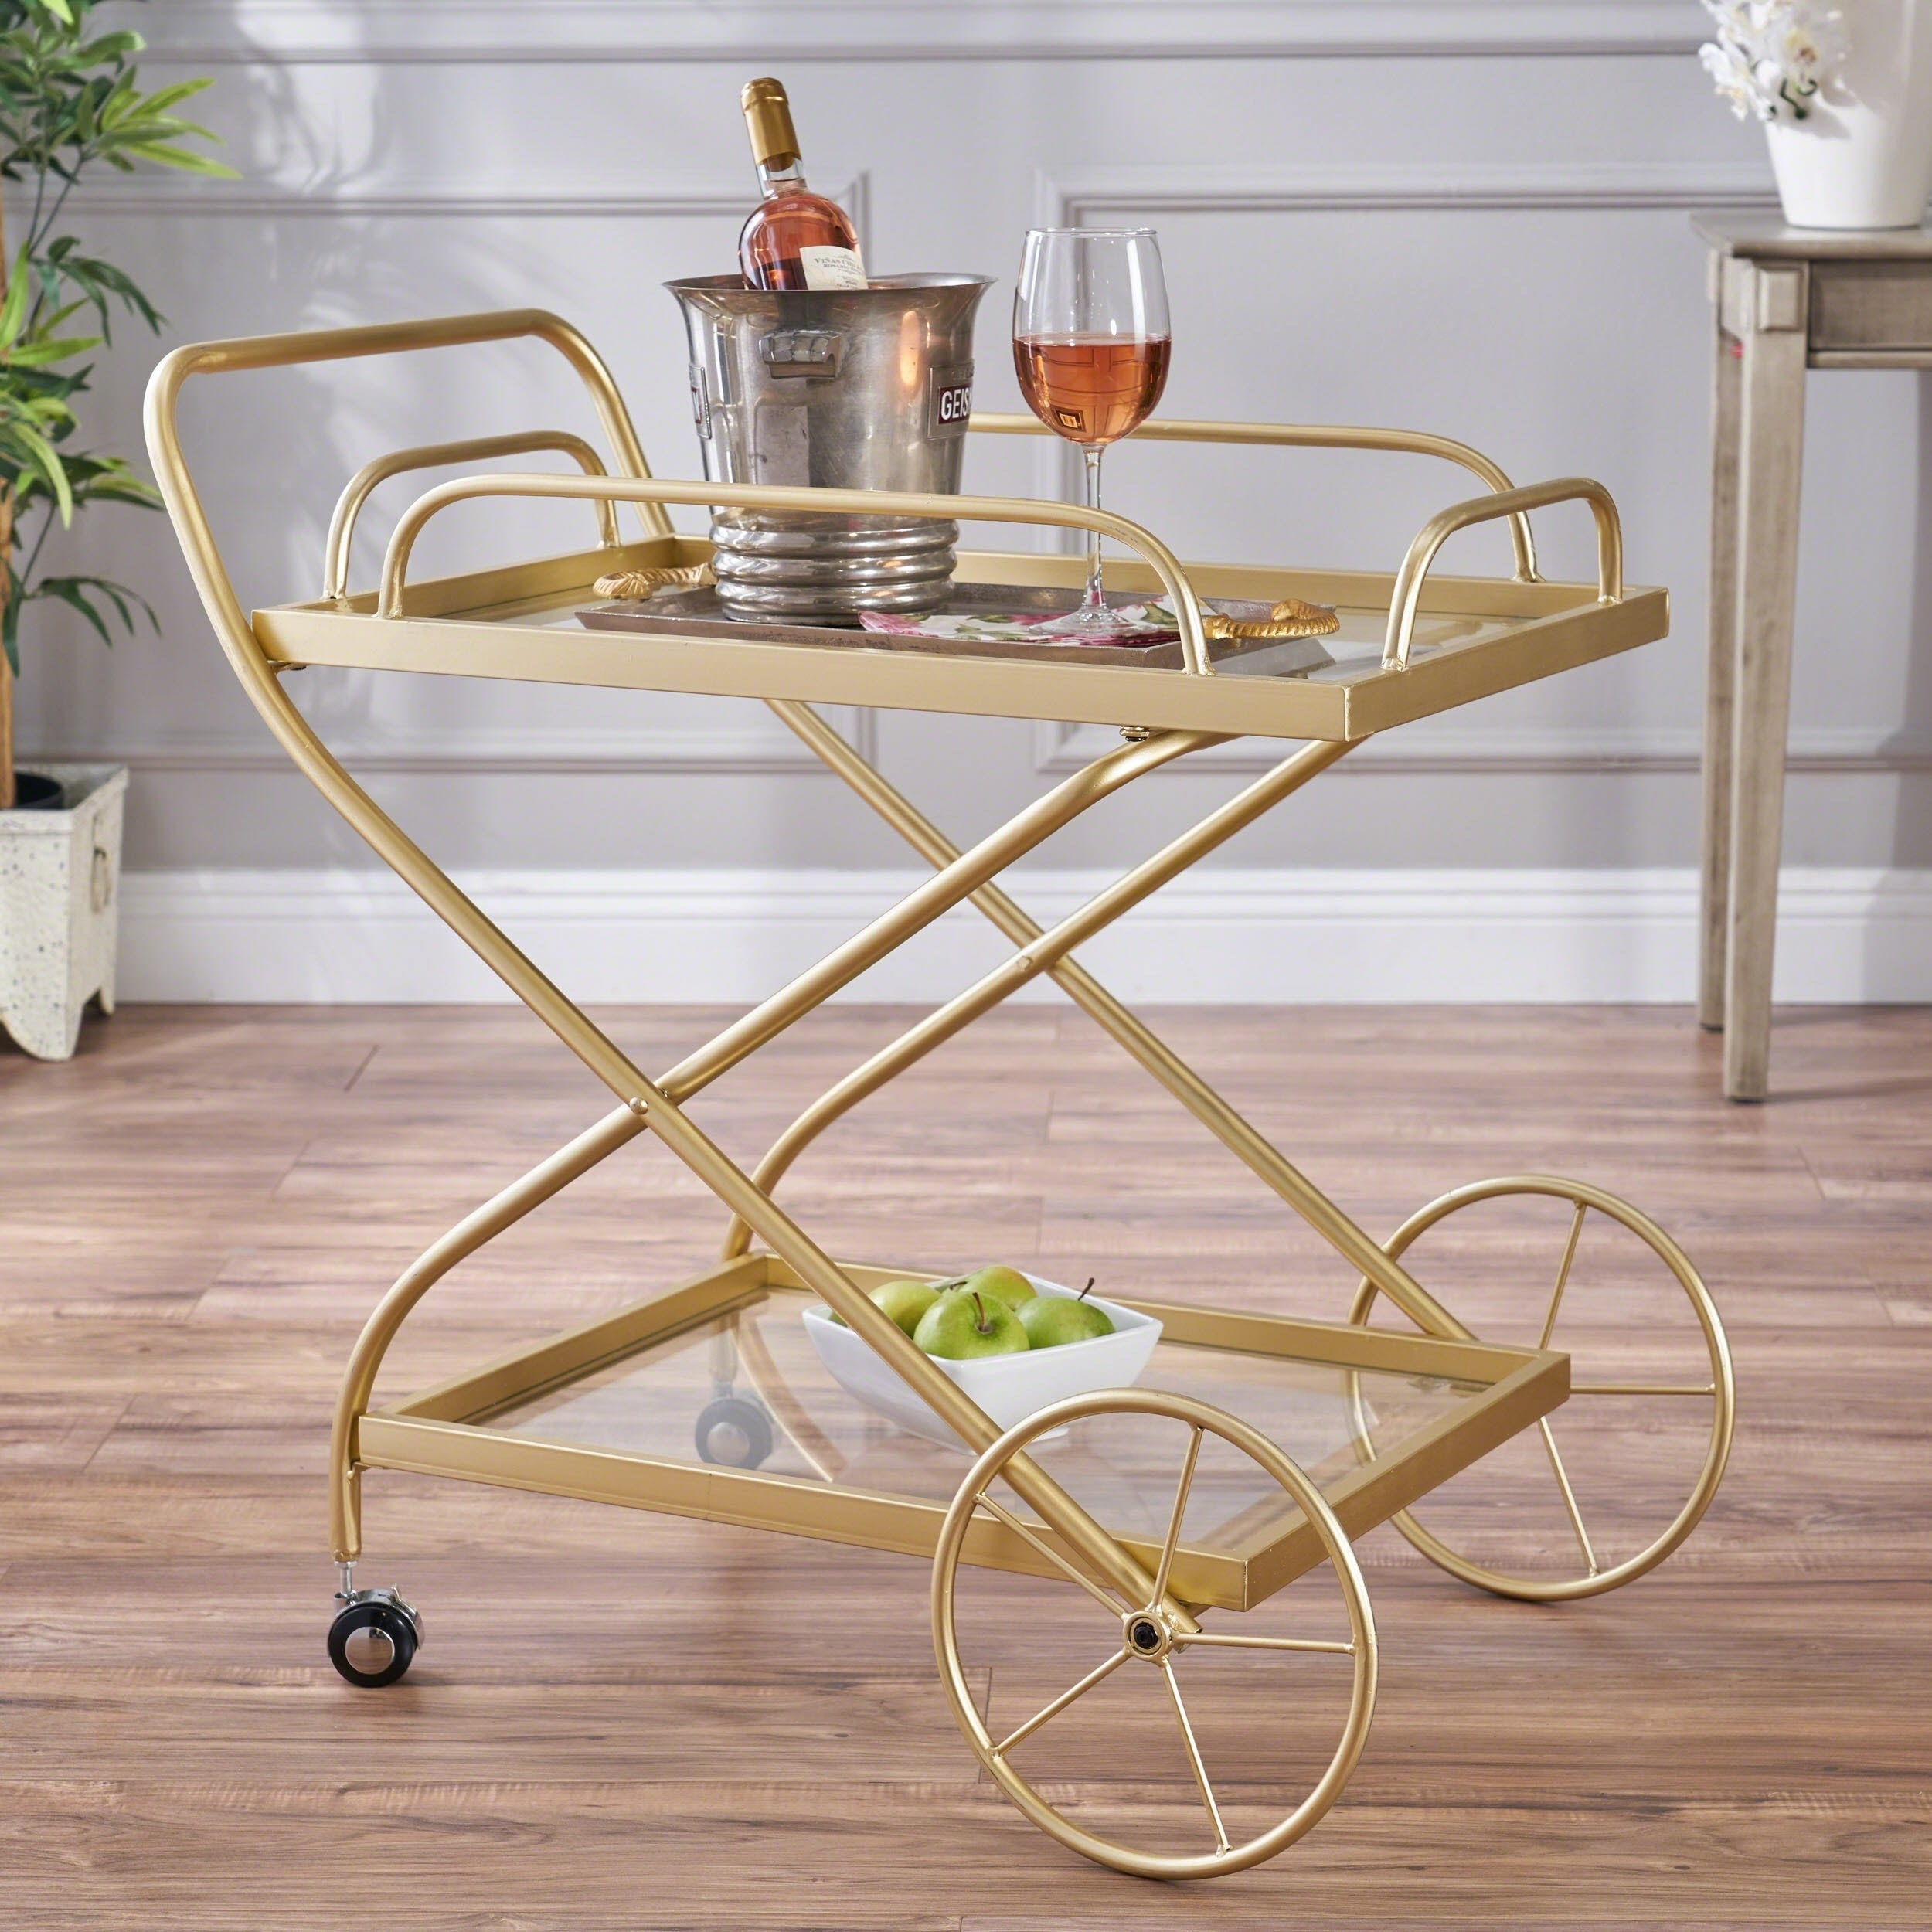 Christopher Knight Home Perley Traditional Iron Glass Bar Cart with Shelves by